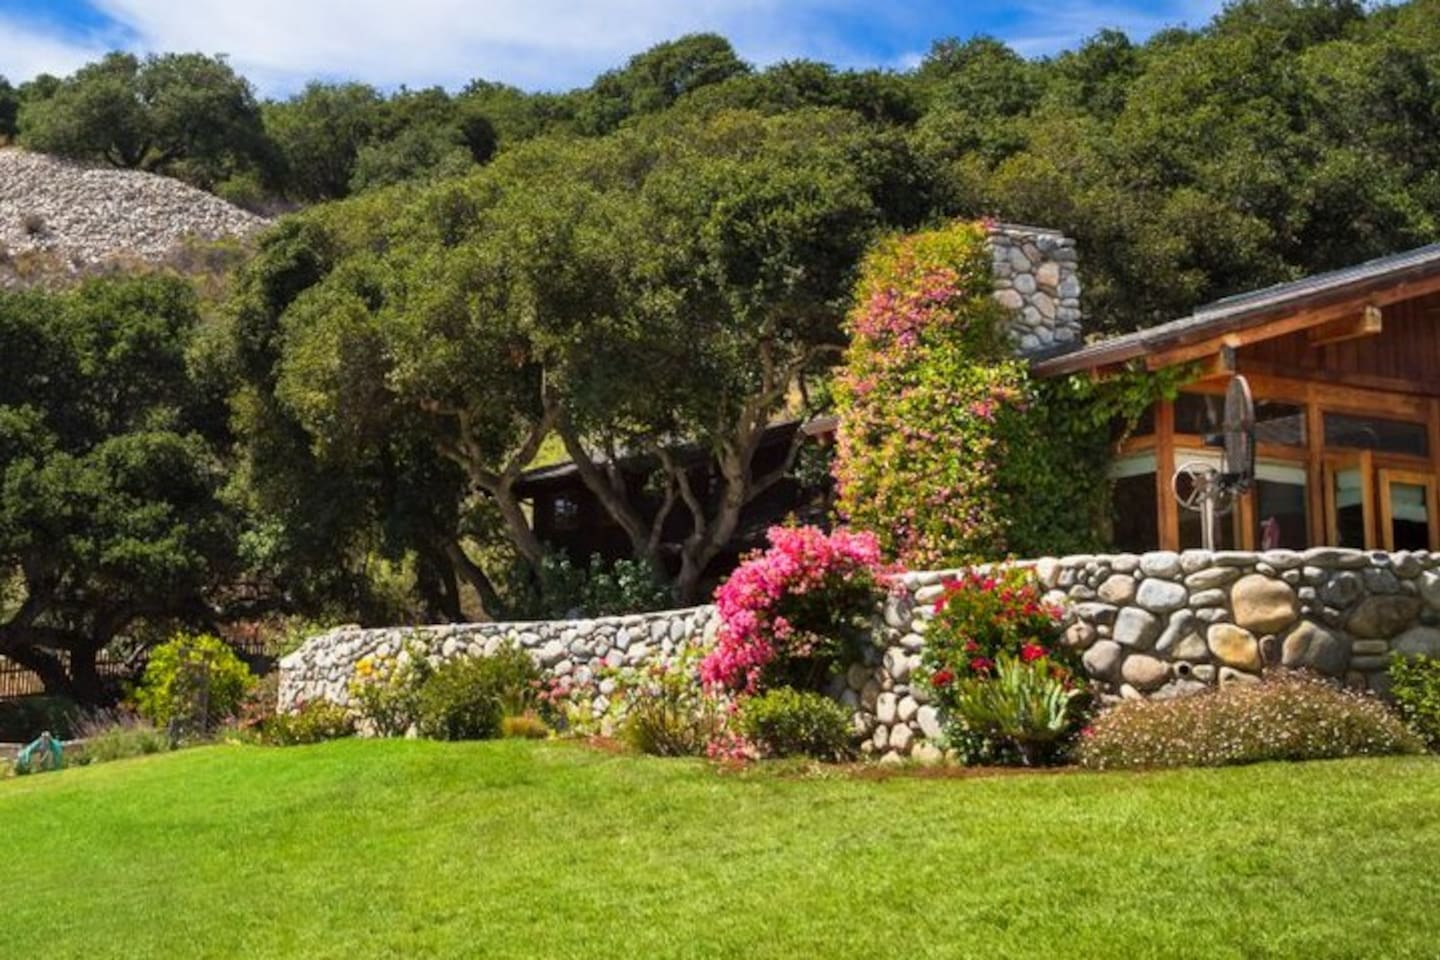 Three Rams Ranch in Carmel Valley, California